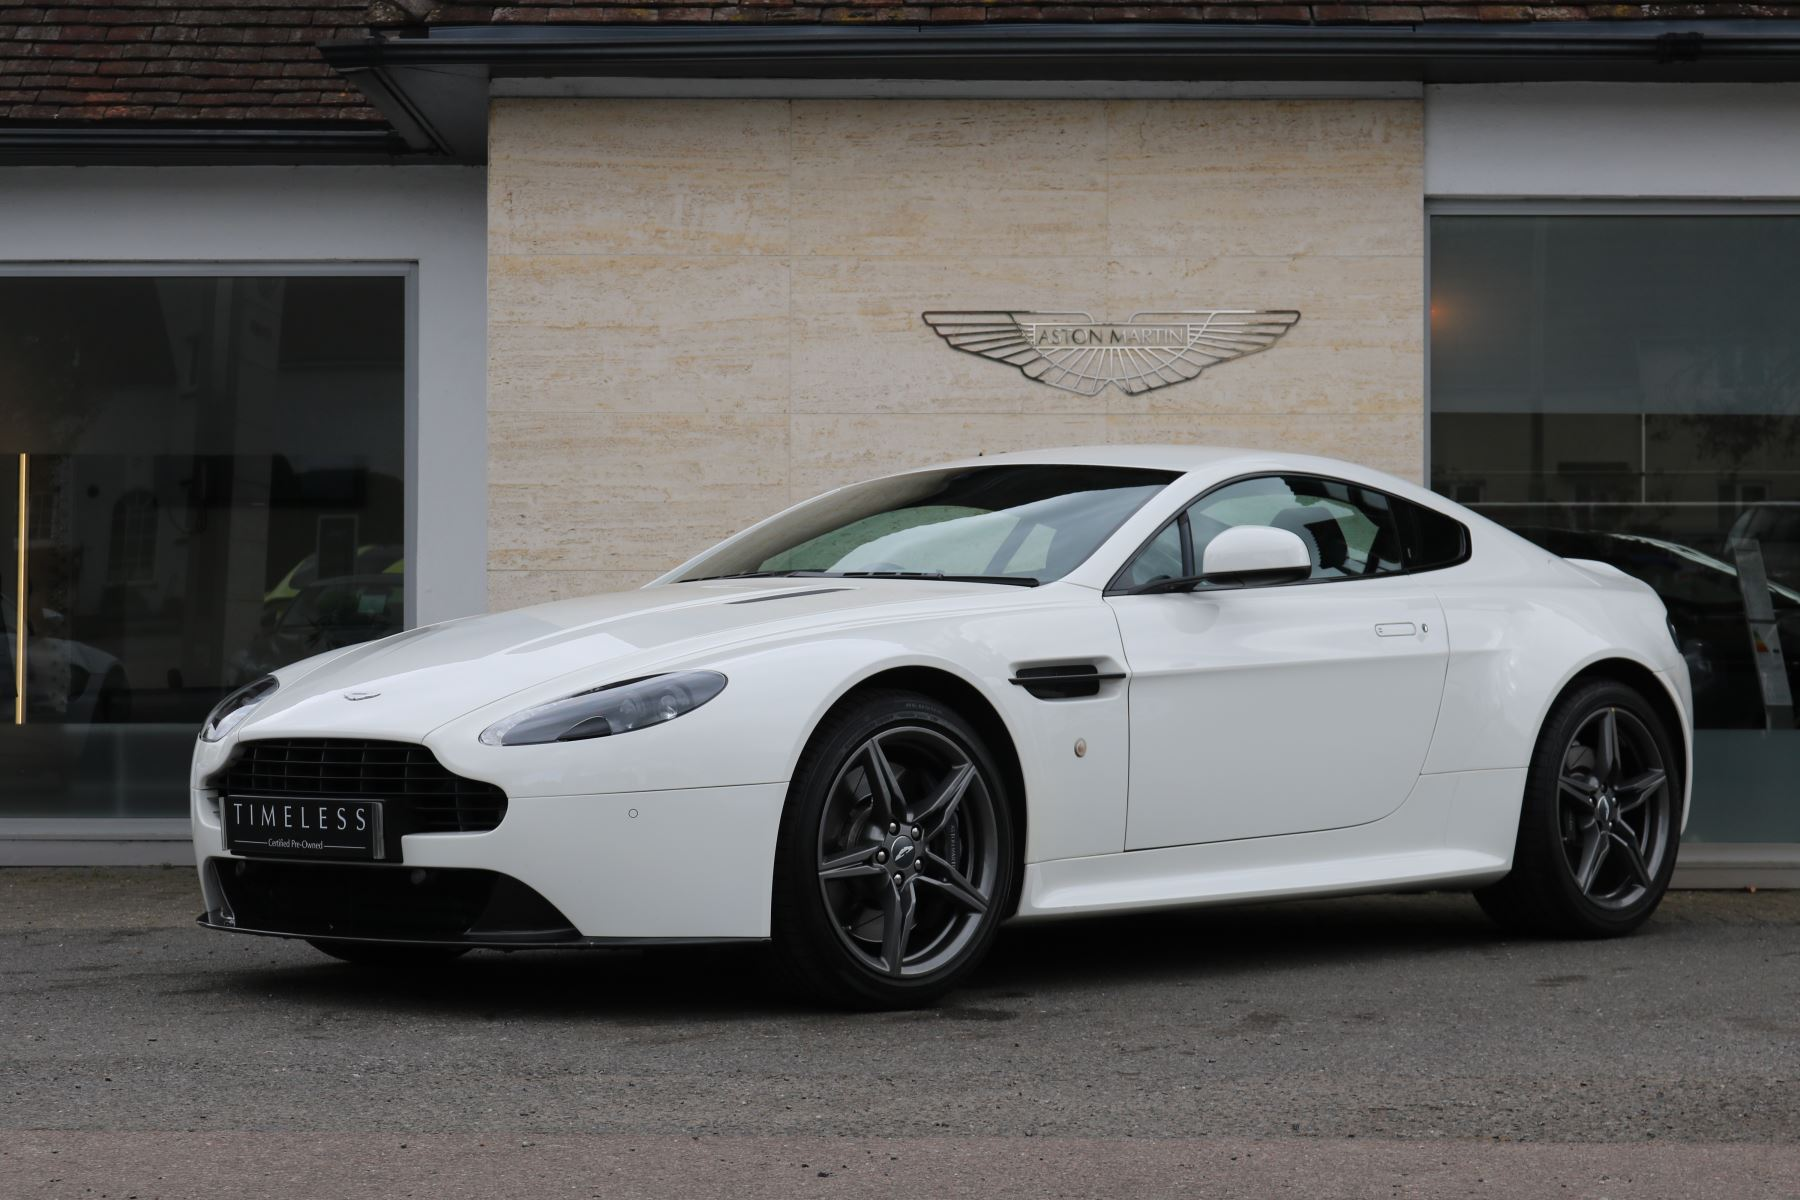 Used Aston Martin White Cars For Sale Grange - Used aston martin